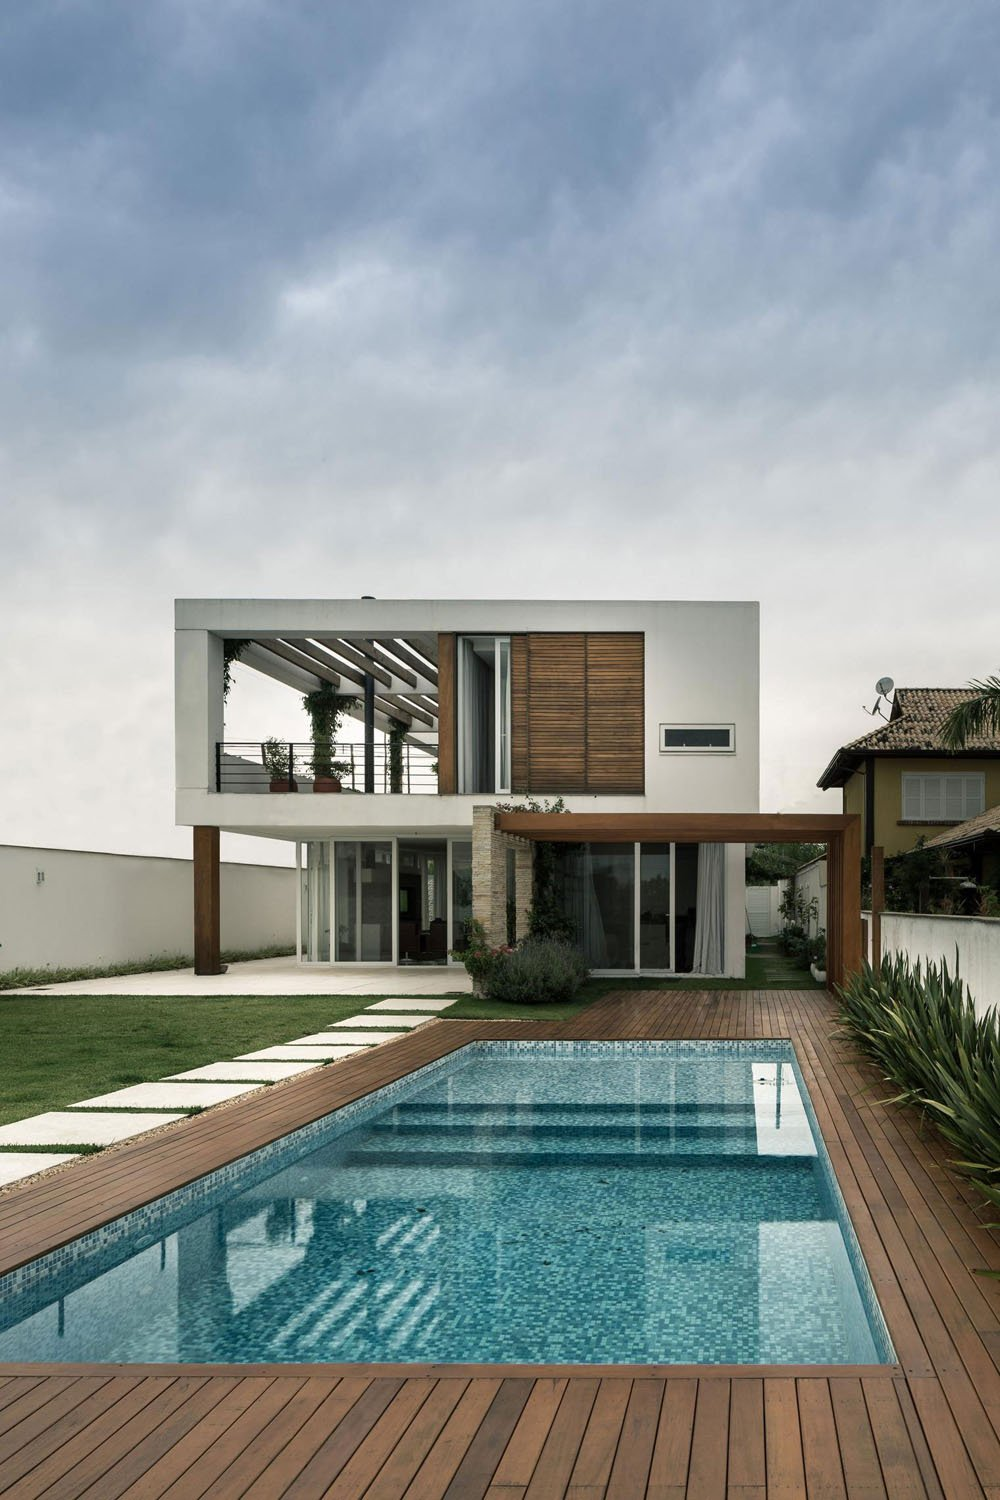 Casa-Ceolin-by-AT-Arquitetura